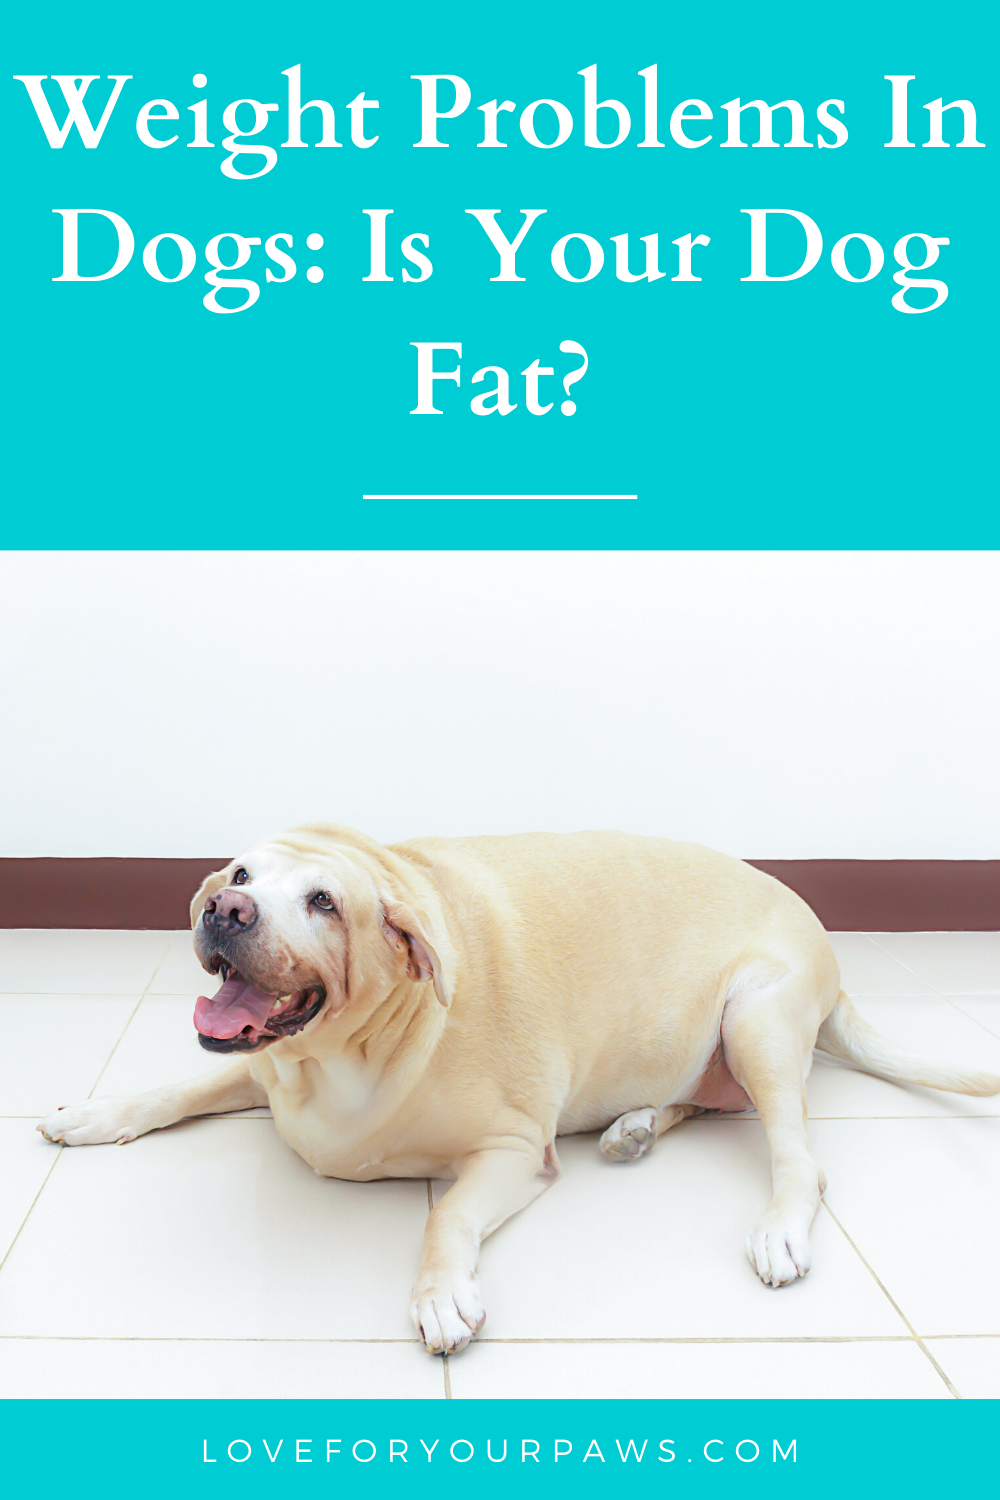 624bf3dfd458fe39ce70cb5d70faea69 - How To Get My Overweight Dog To Lose Weight